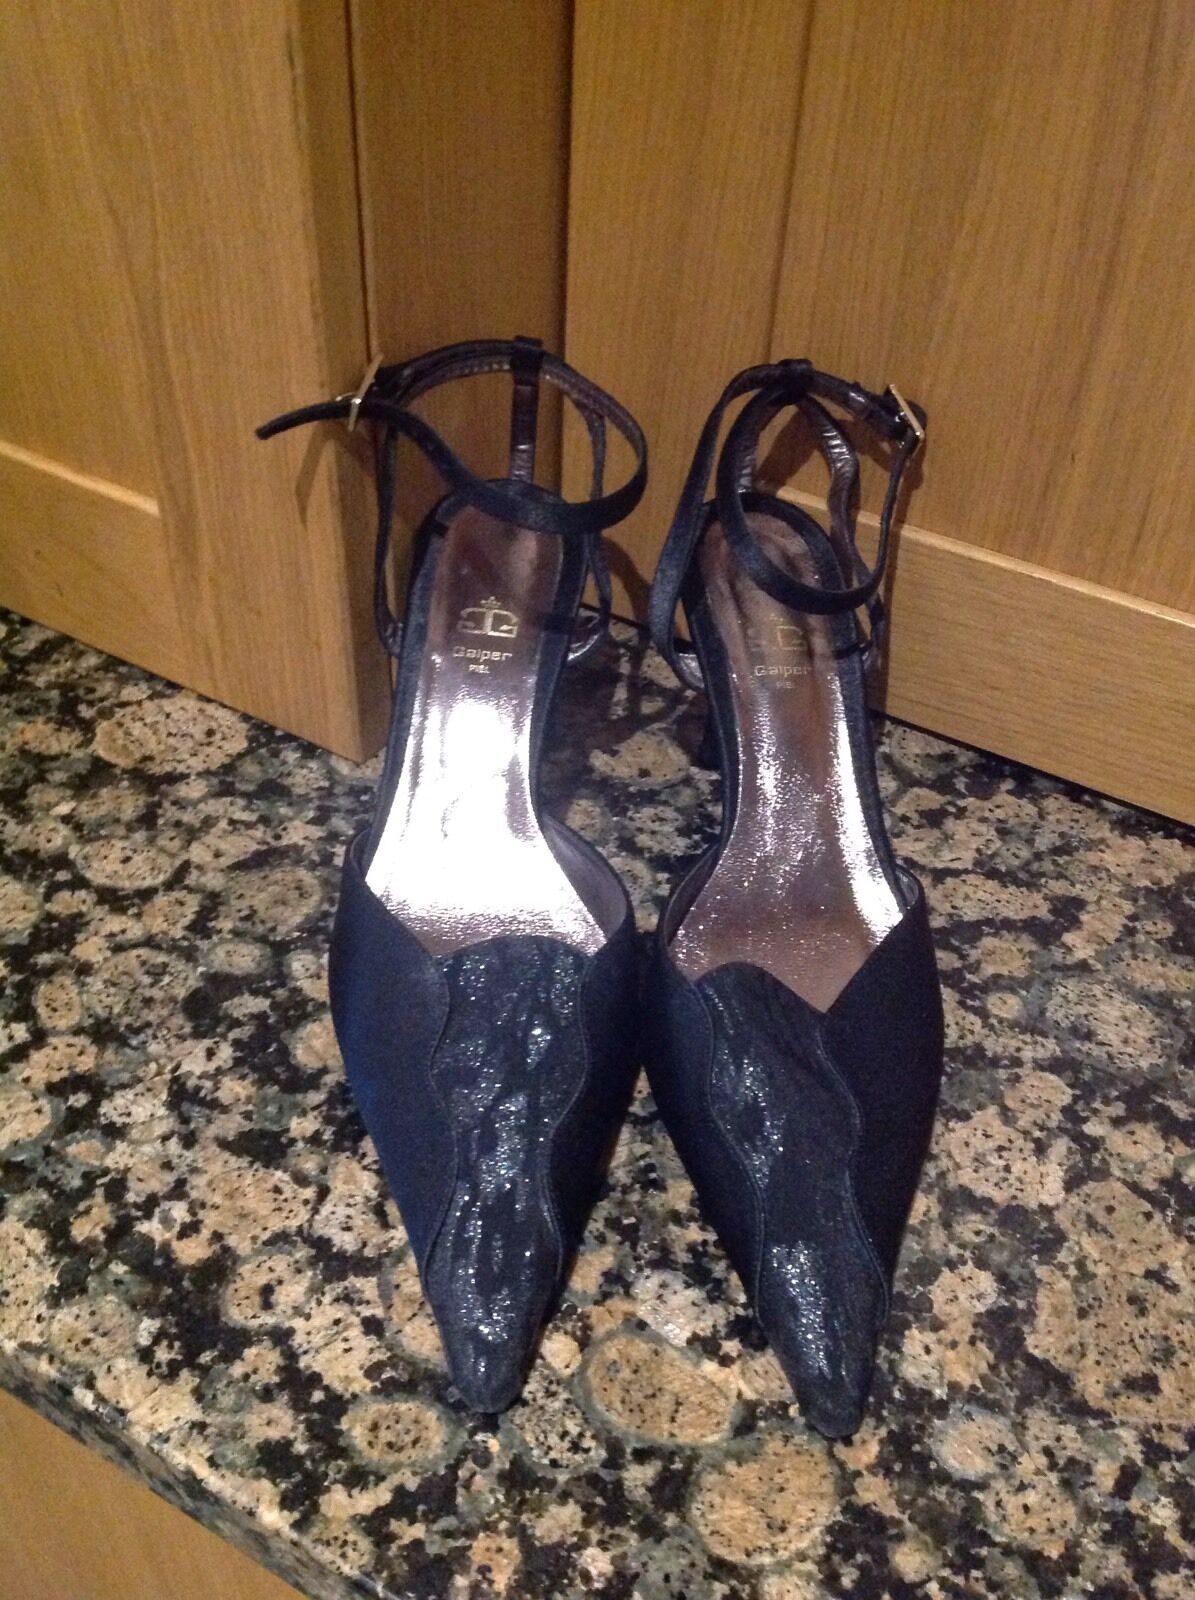 CLASSY GALPER PIEL STRAPPY SHOES/UK SIZE5/WORN BARELY/ GREAT CONDITION